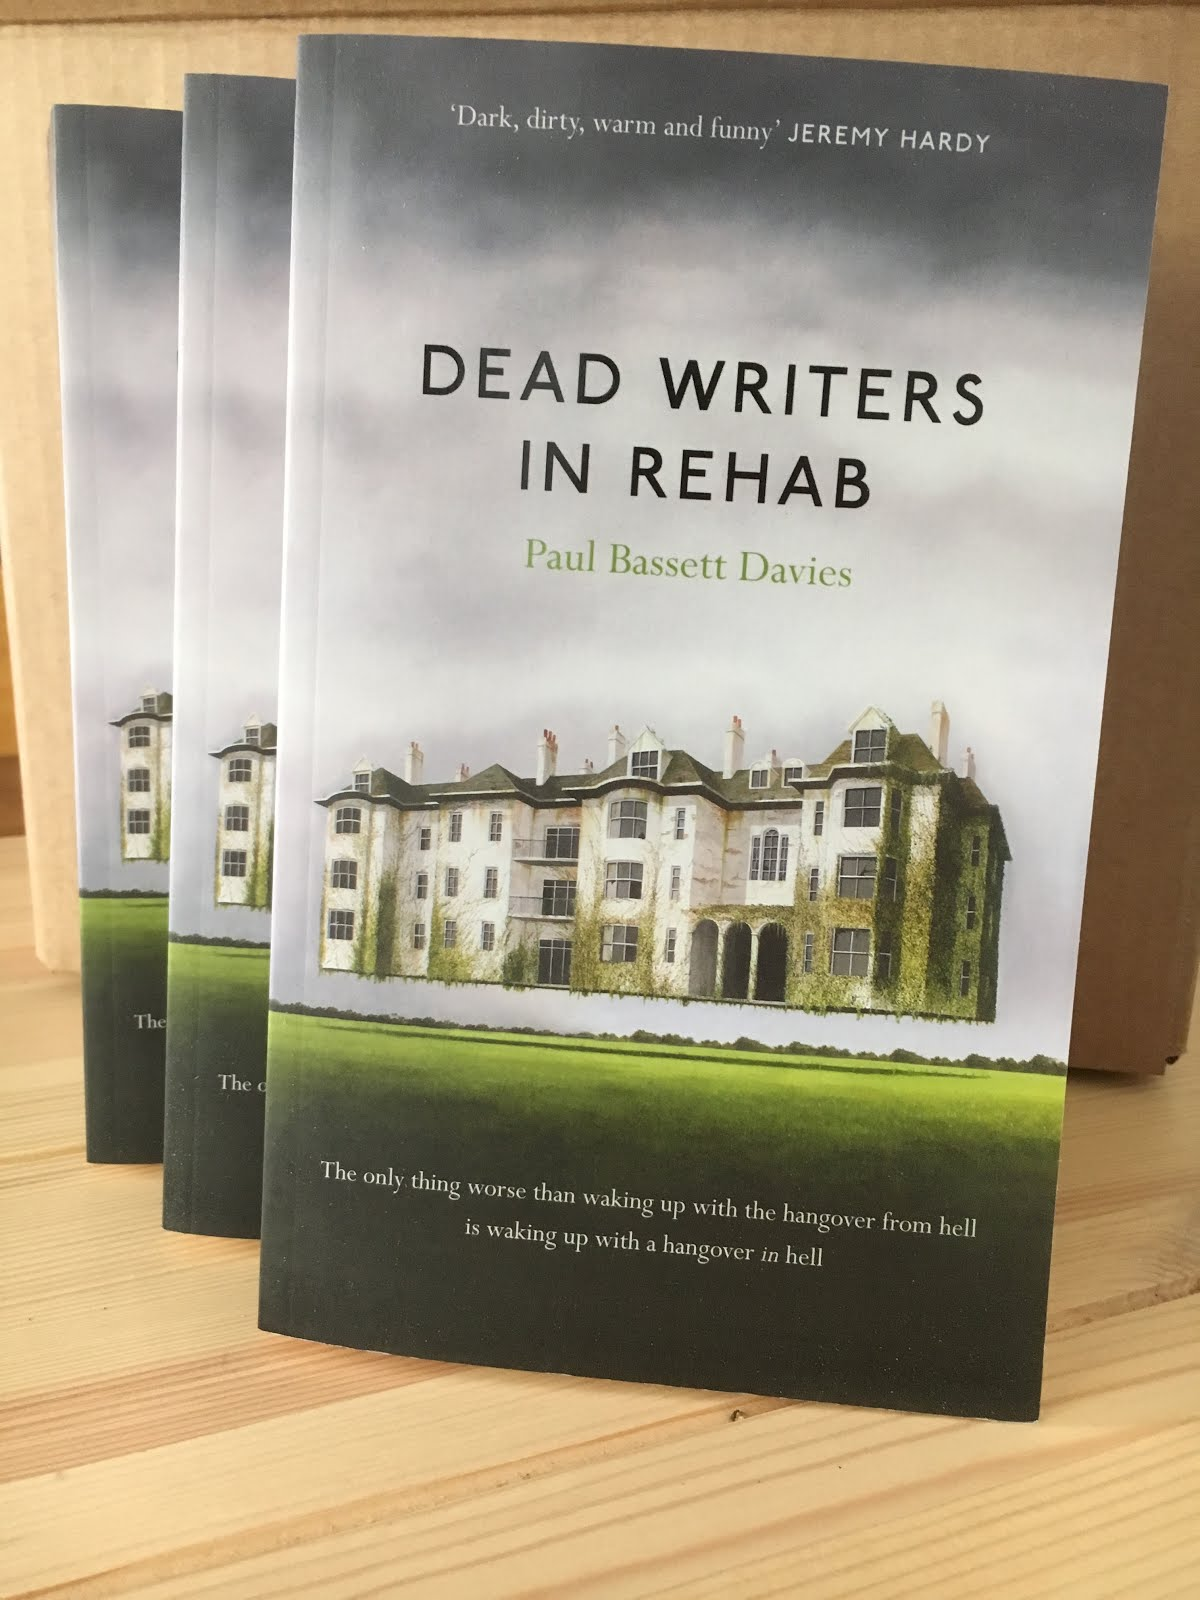 For details and news of my second novel, 'Dead Writers in Rehab', click on the image below: